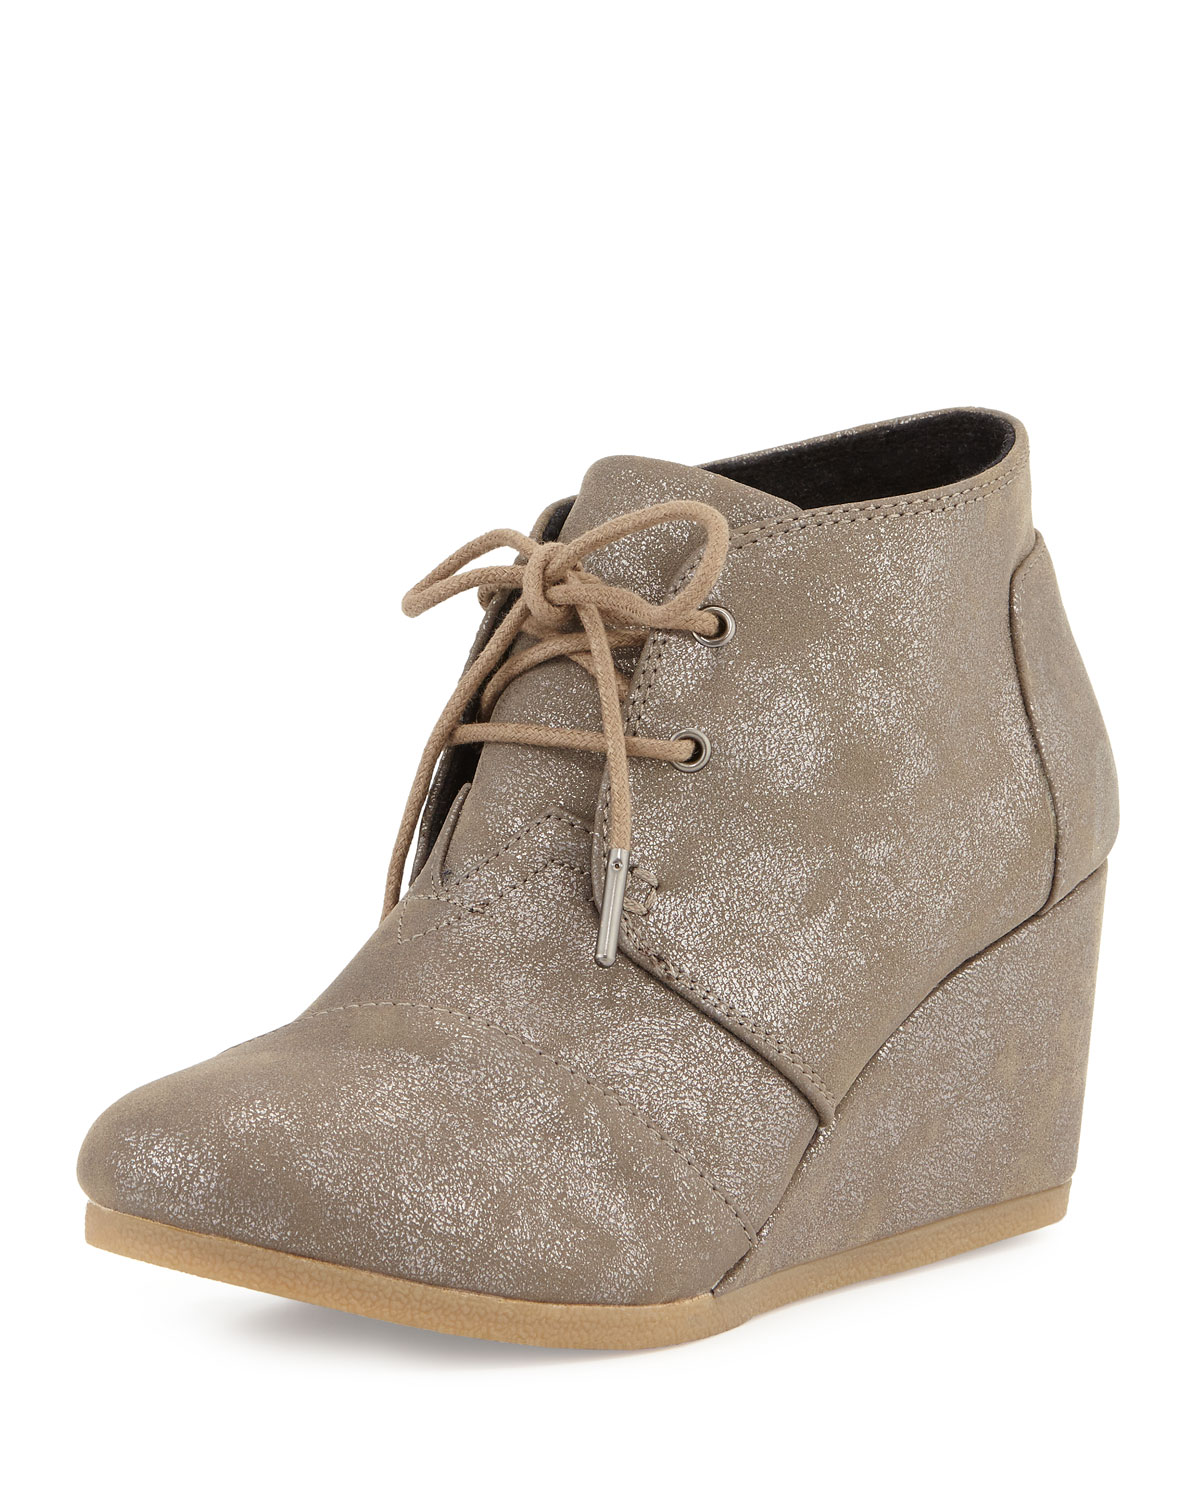 4e022b838c9 TOMS Desert Lace-Up Wedge Bootie